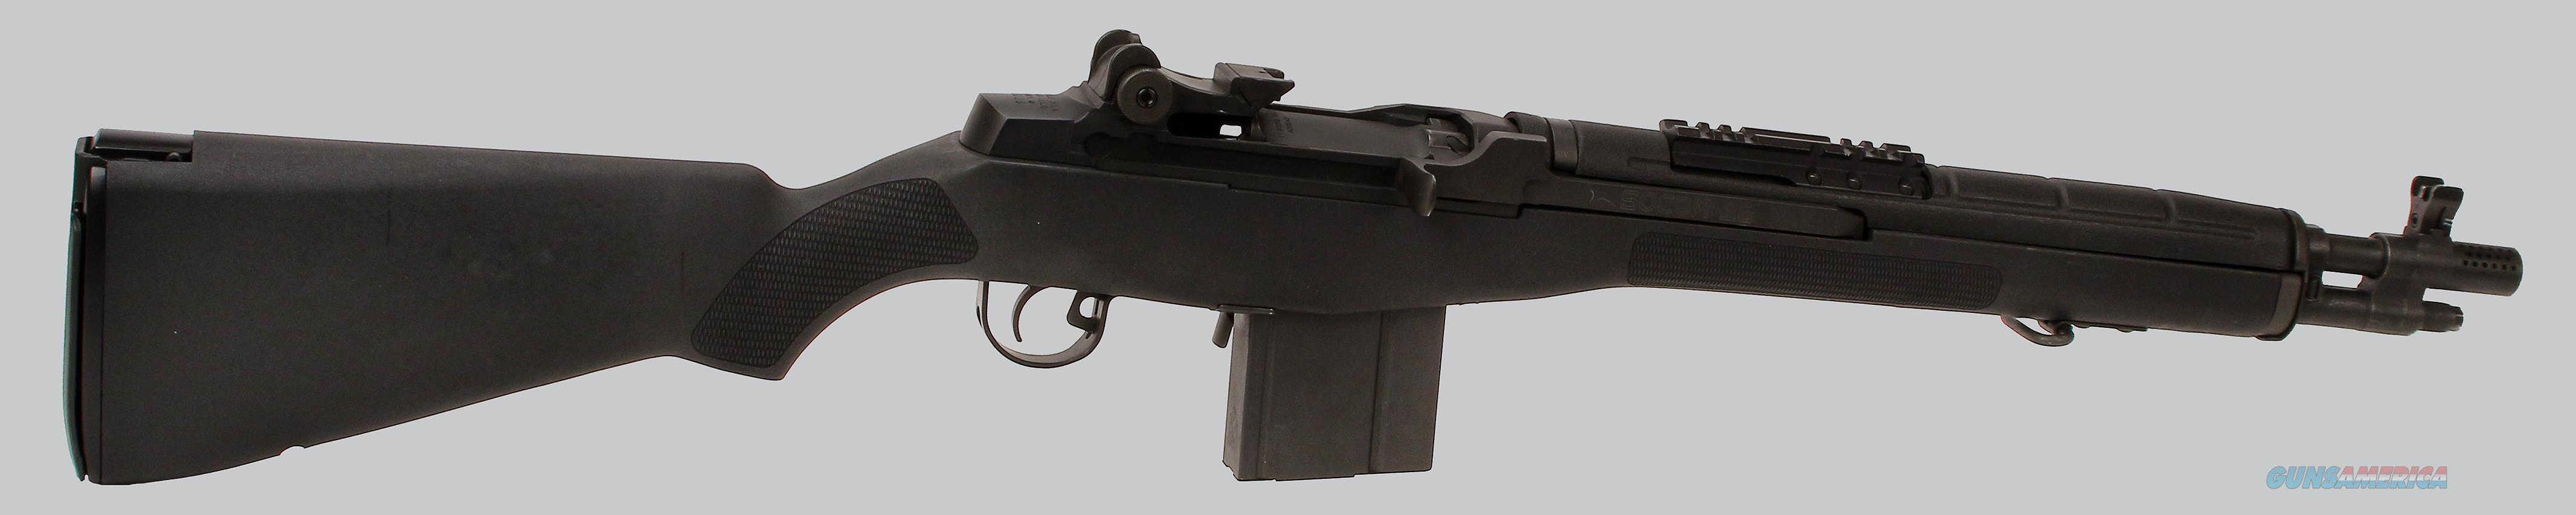 Springfield Armory 308cal M1A Scout Squad Semi Rifle  Guns > Rifles > Springfield Armory Rifles > M1A/M14